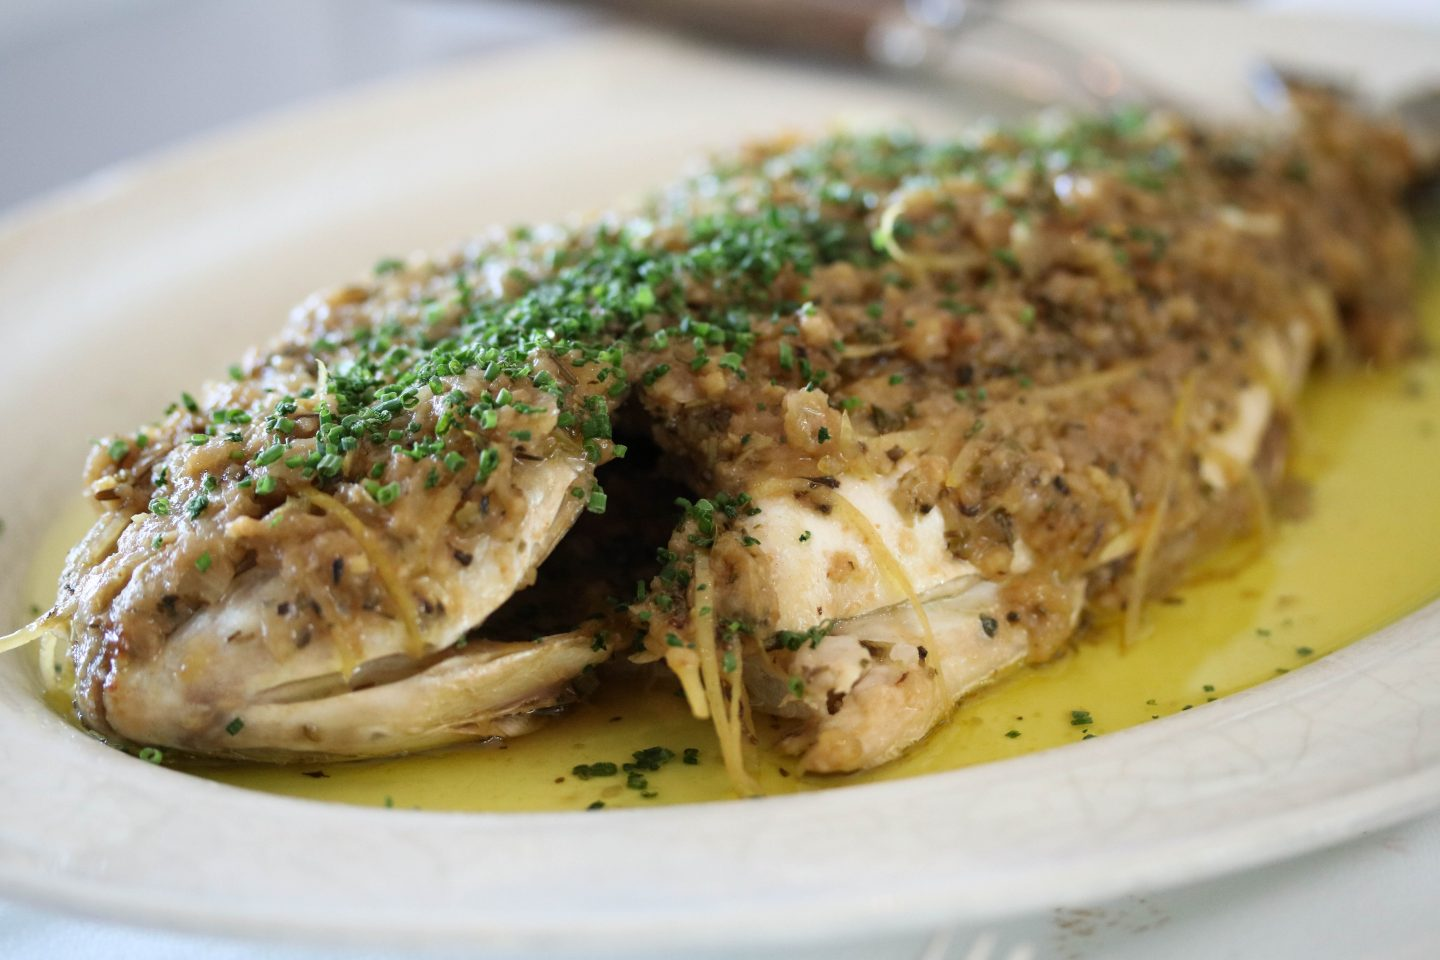 Fish, herbs and olive oil in papillotte at La Petite Maison, the best restaurant for lunch in Dubai on the Lifestyle Enthusiast blog